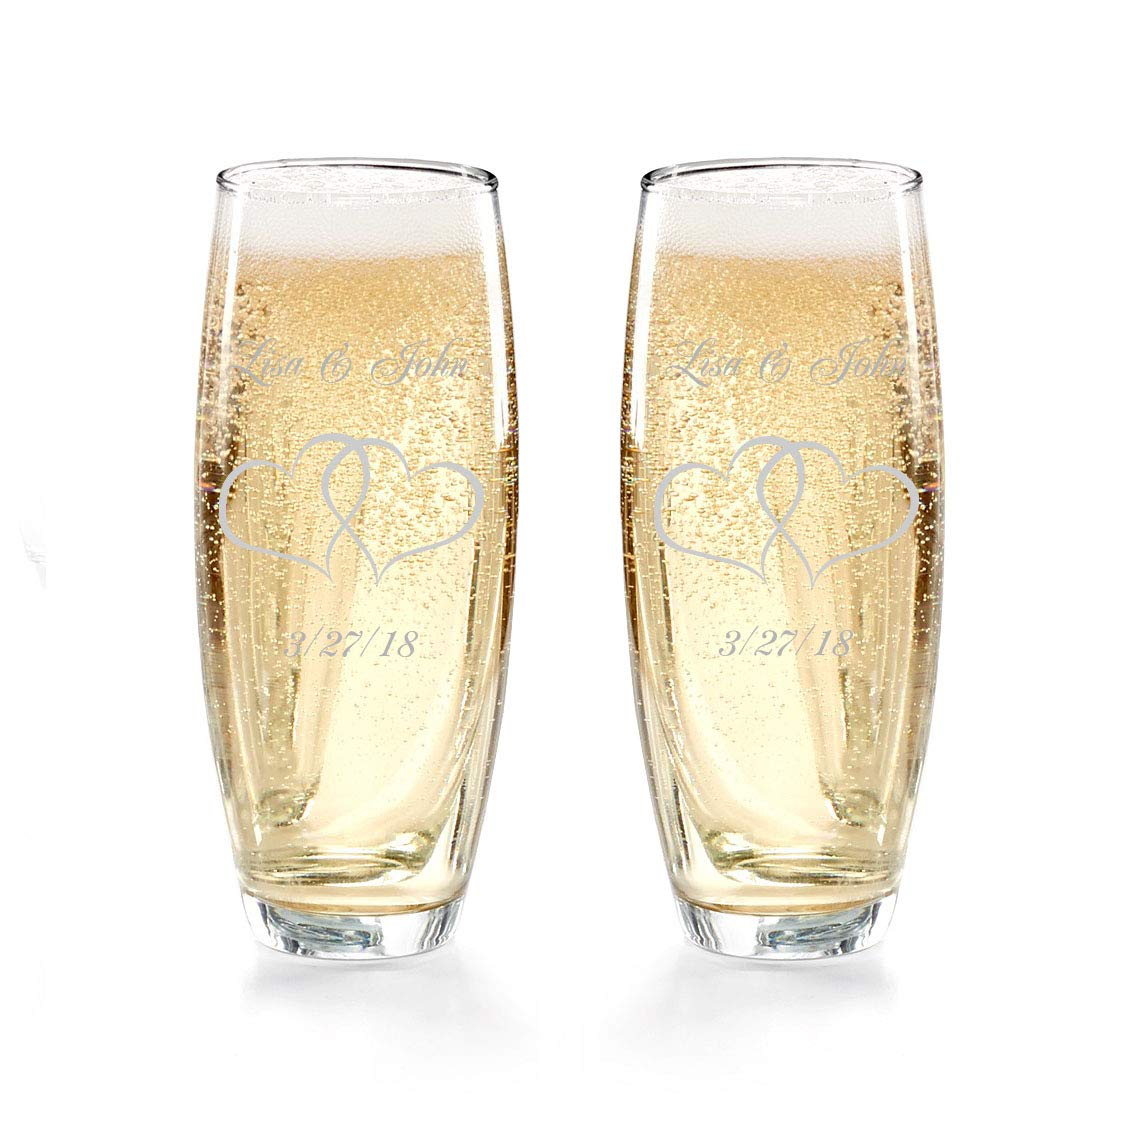 Gifts Infinity Engraved Wedding Stemless Champagne Flutes Set of 2 Personalized Toasting Glasses (Interlock)